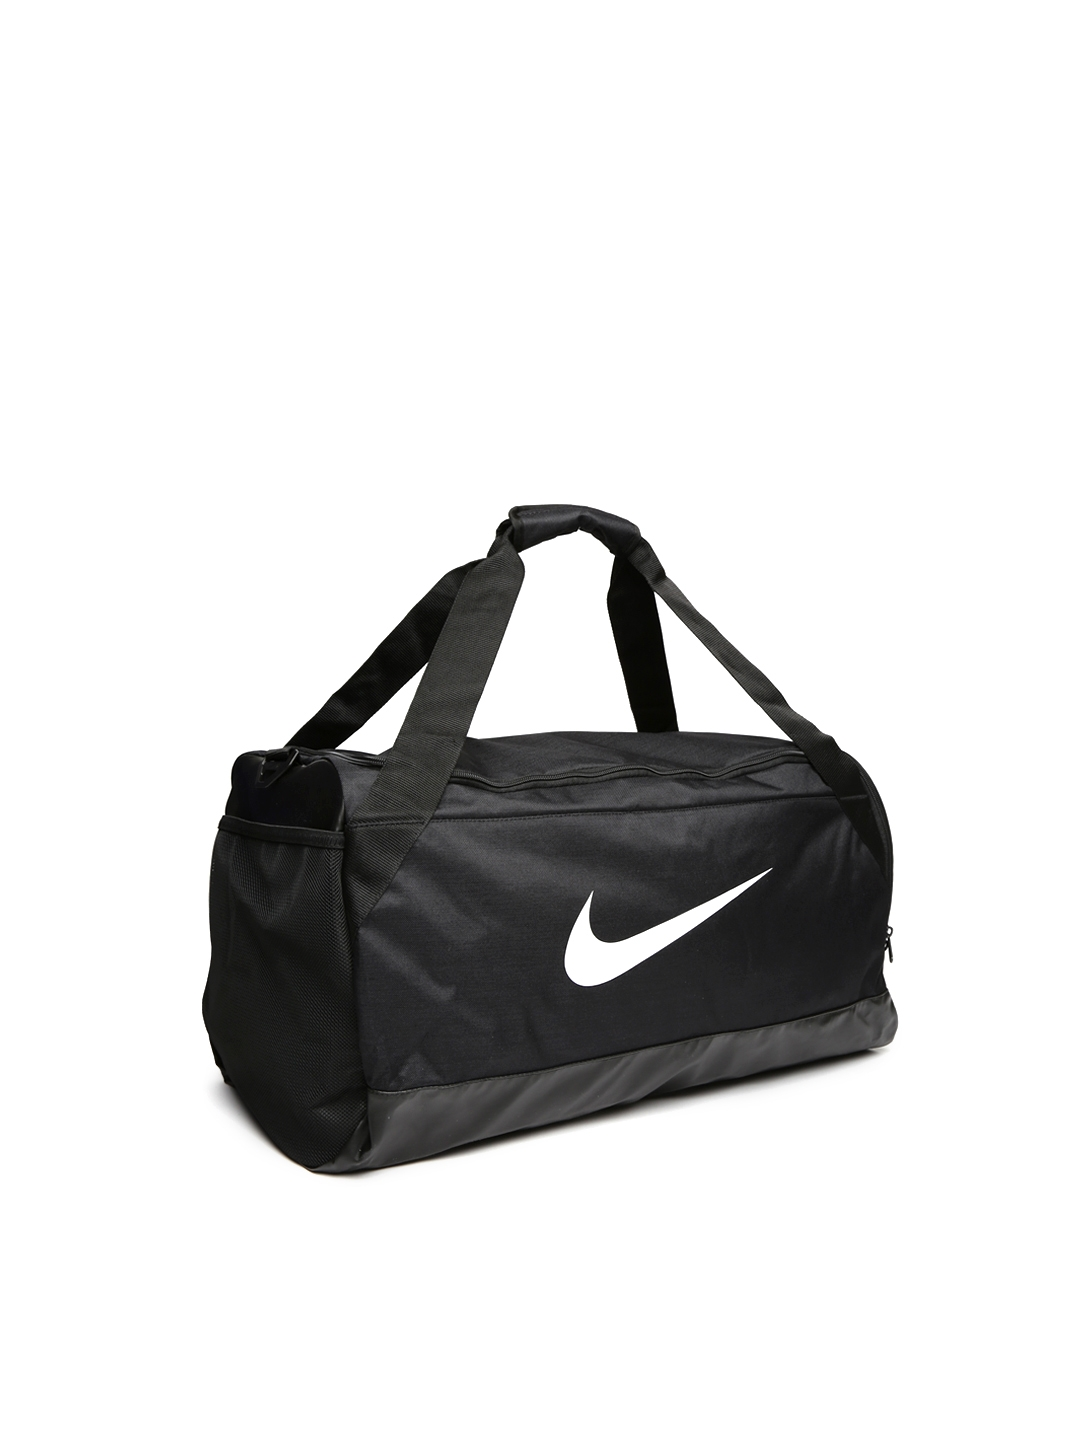 Buy Nike Unisex Black BRSLA M Training Duffel Bag - Duffel Bag for ... 66f0dd67c12c0